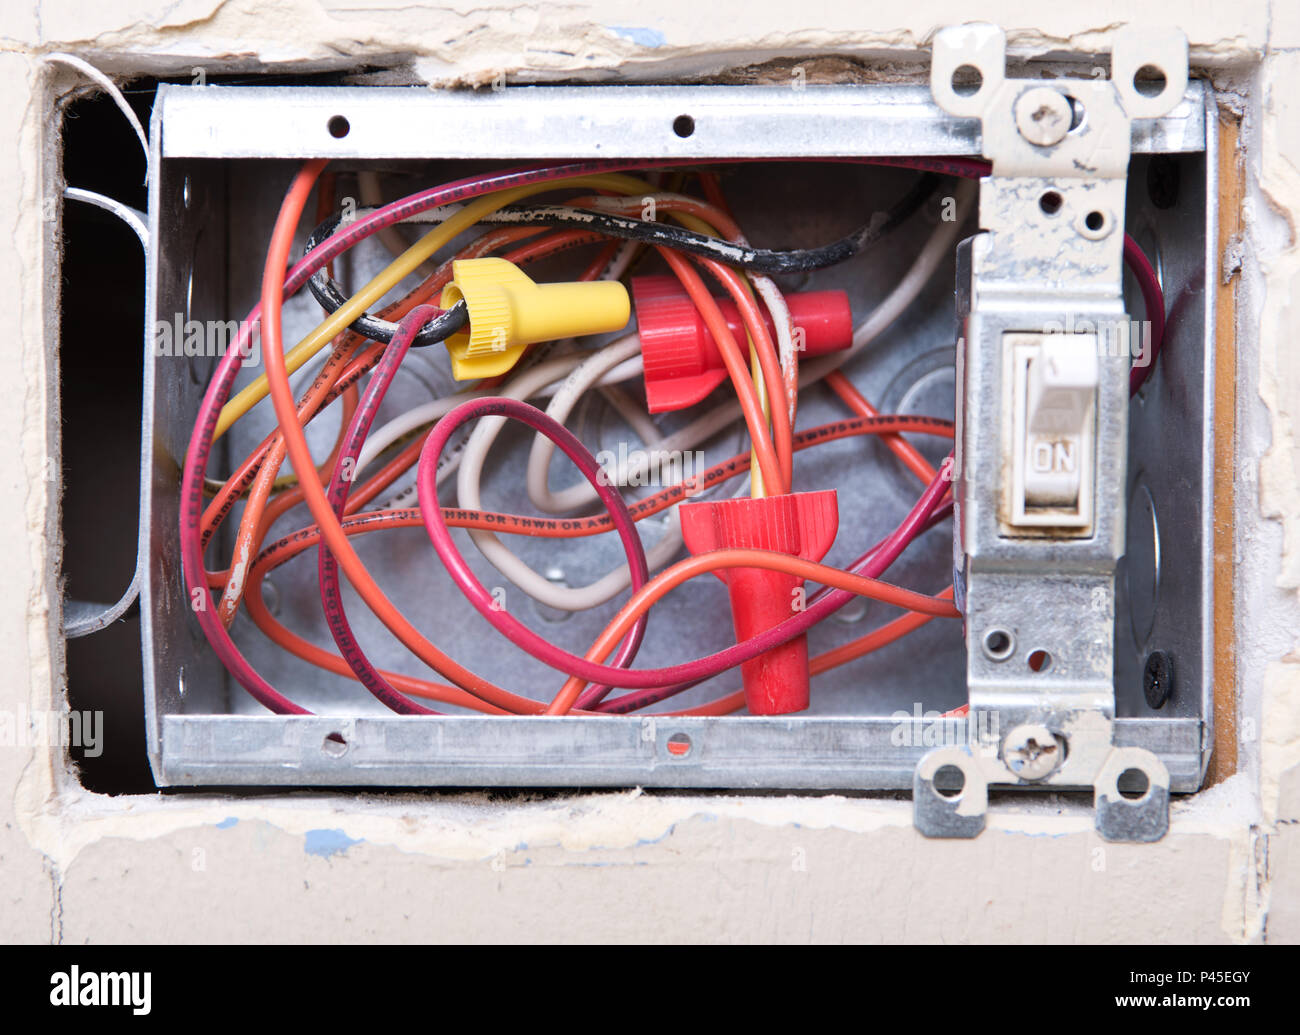 Open House Wiring Box Radio Diagram Structured Enclosure Uk Electrical Light Switch In The Under Remodeling Stock Rh Alamy Com Circuit Wire Inbox